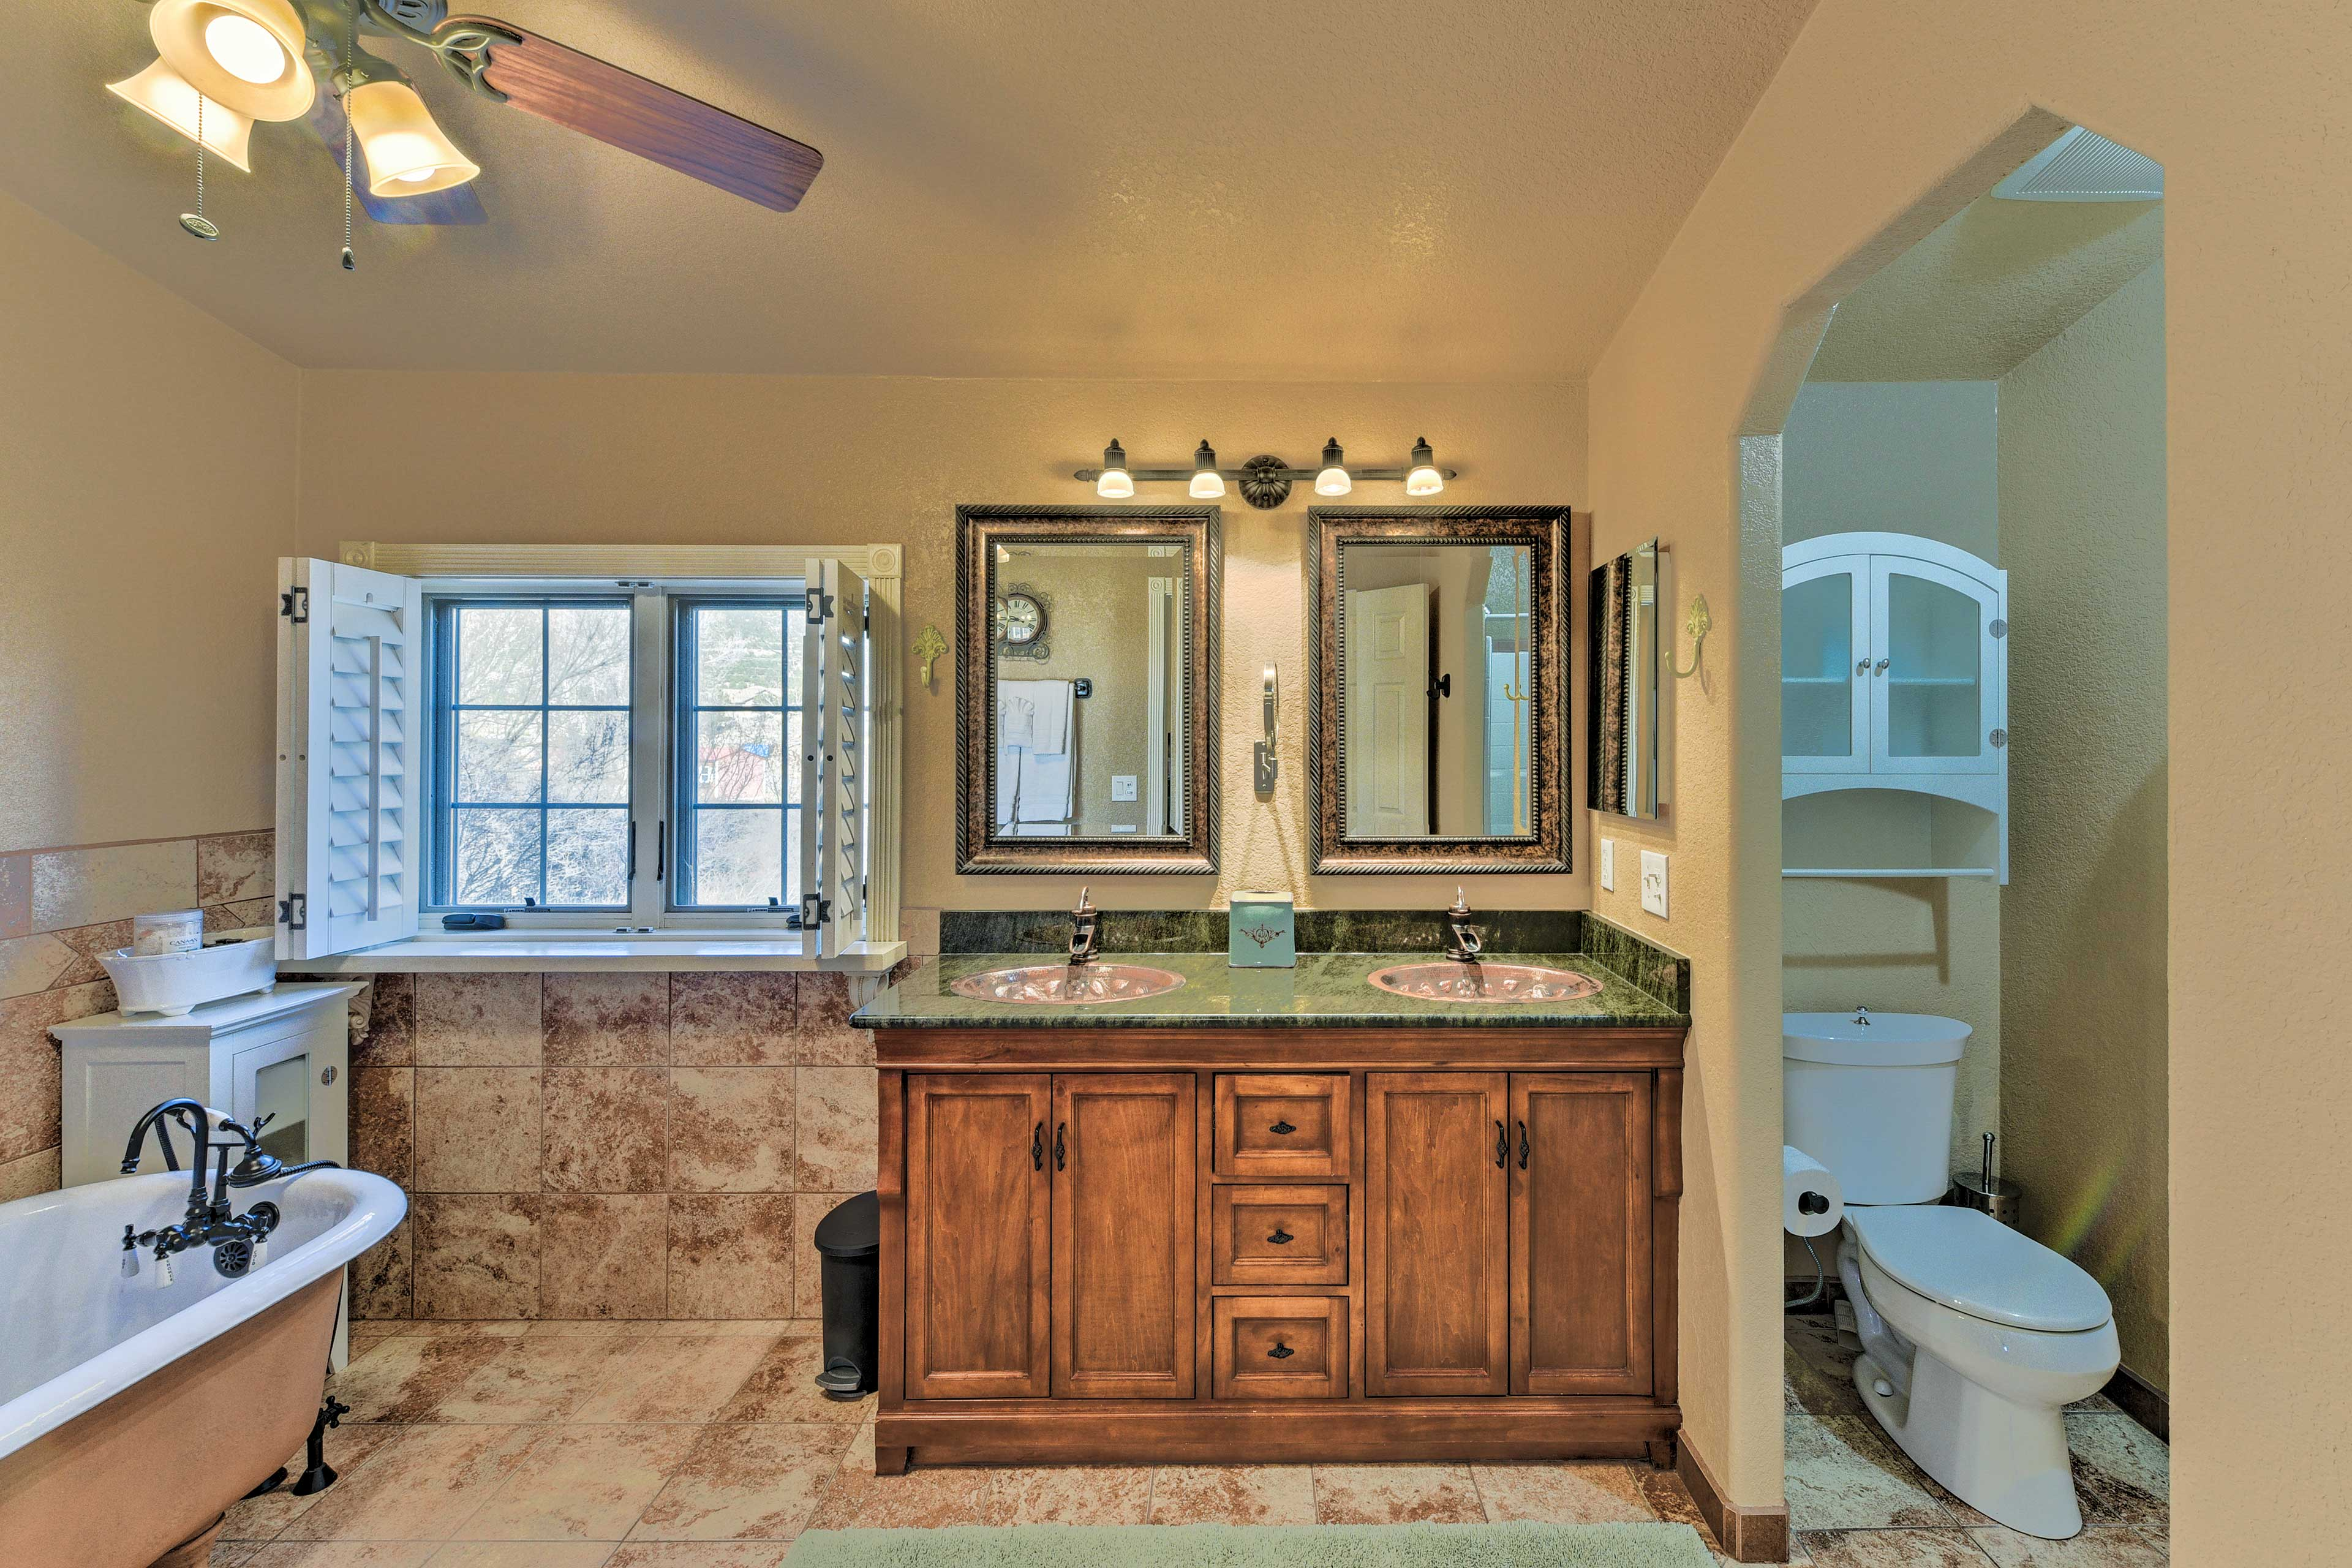 You & your significant other can get ready side by side at this double vanity!